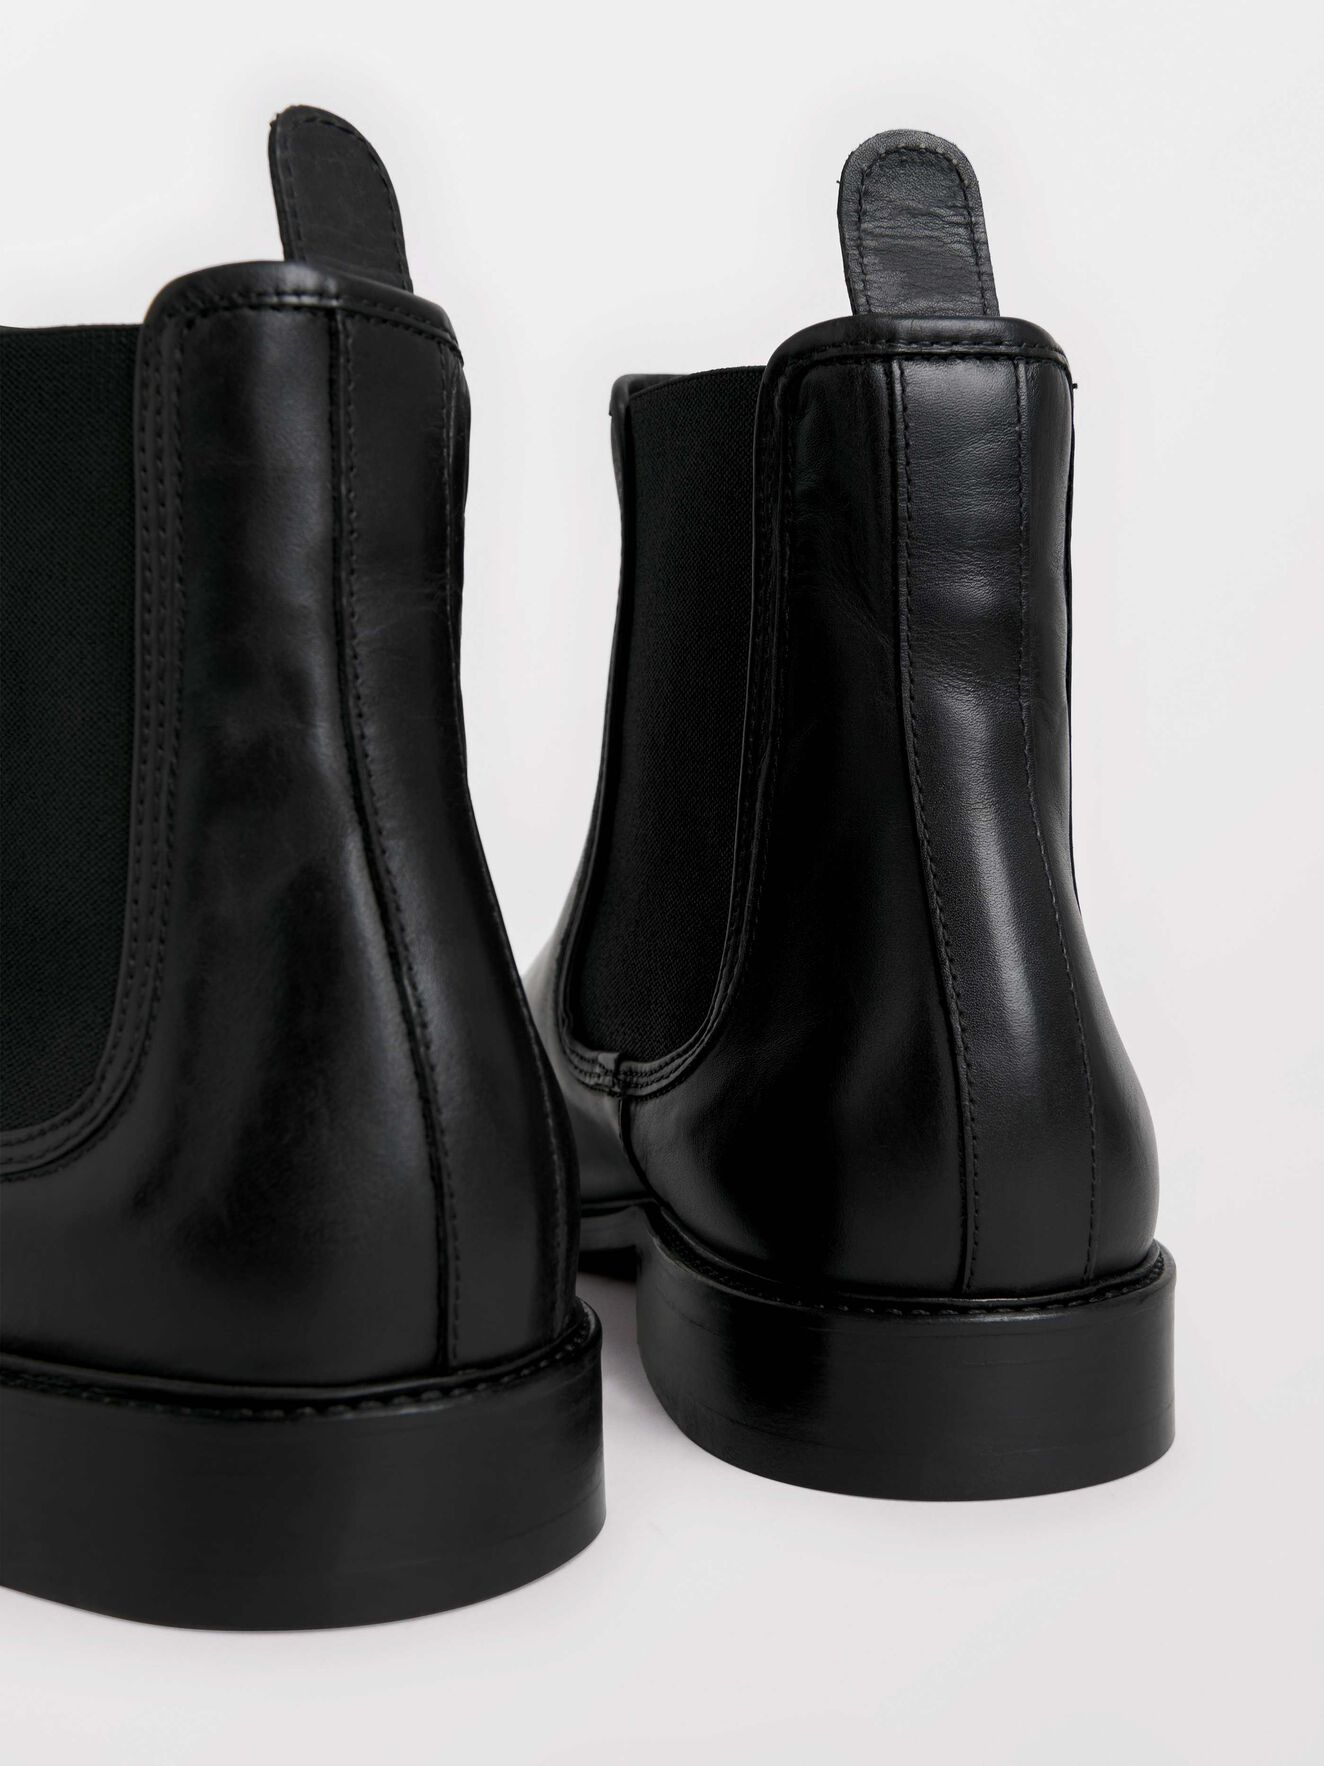 Montan Boots in Black from Tiger of Sweden